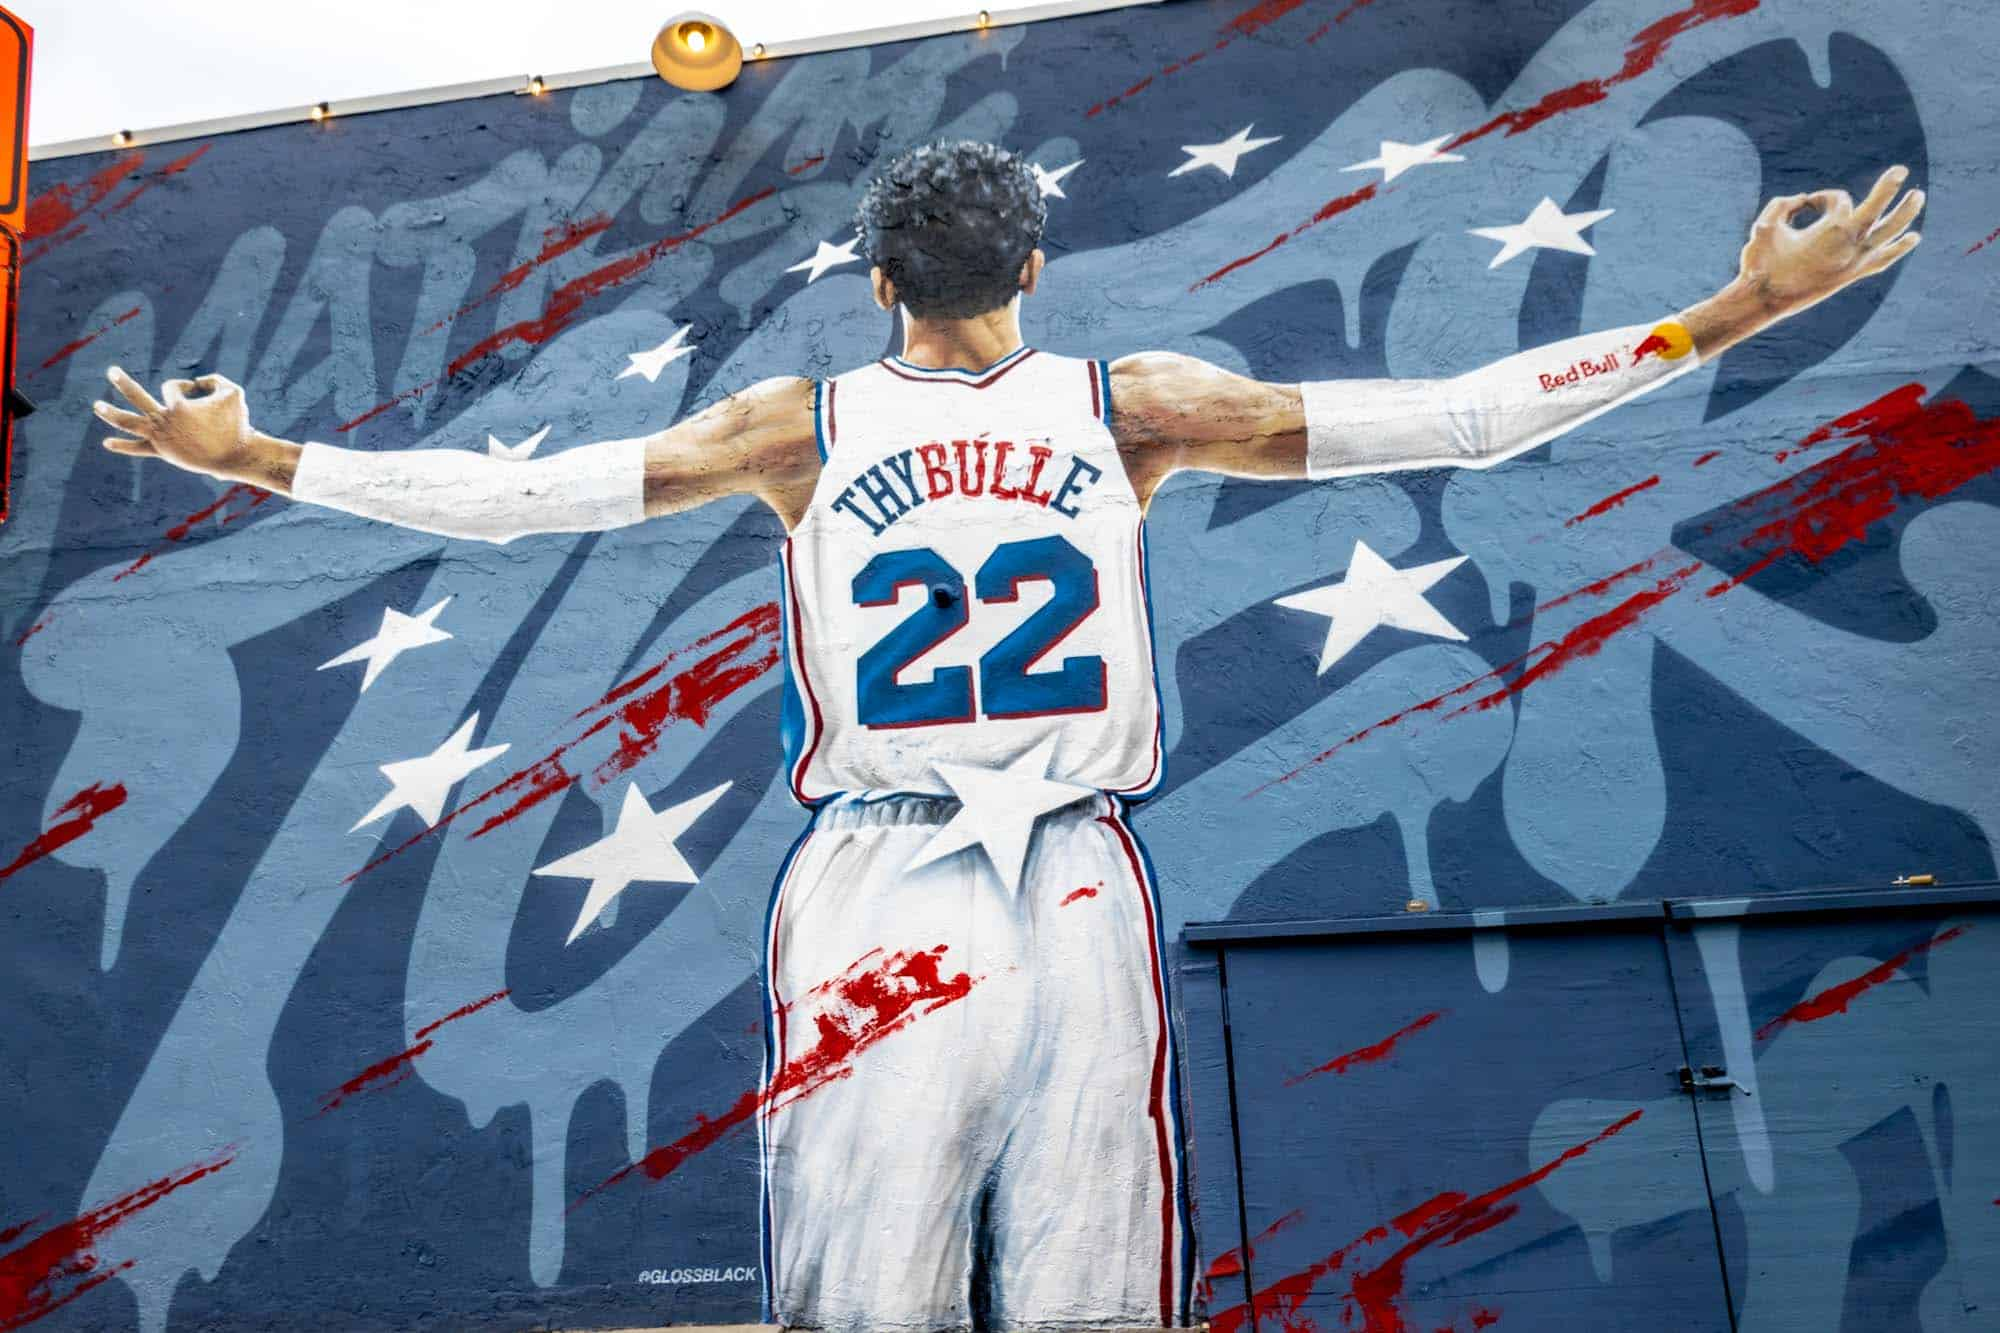 Mural of basketball player Matisse Thybulle with arms outstretched